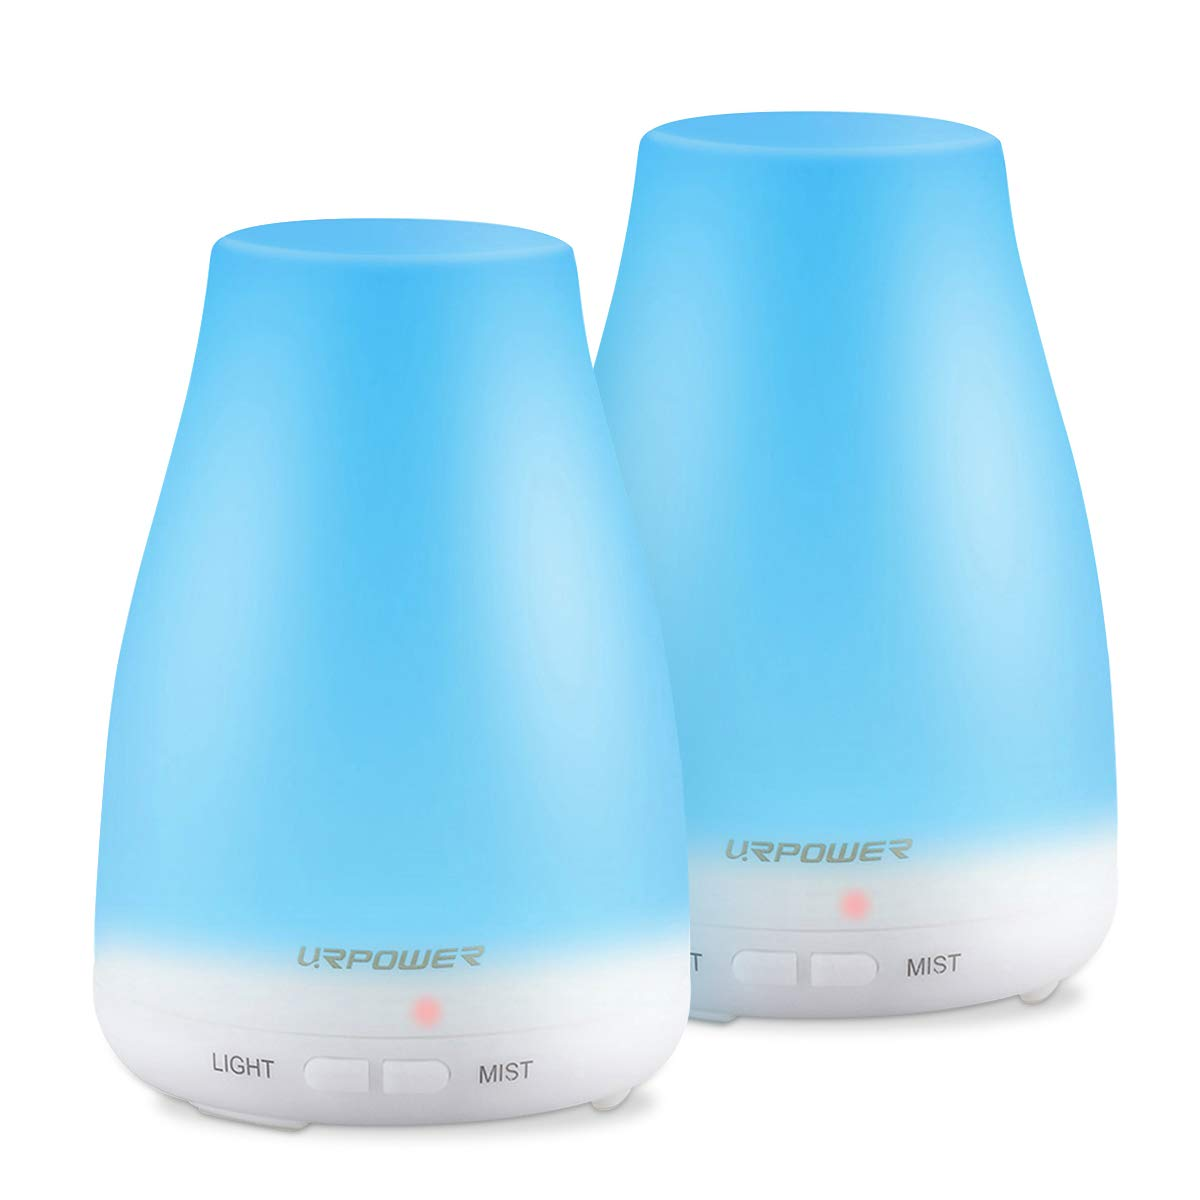 air oil diffuser gifts for family and home